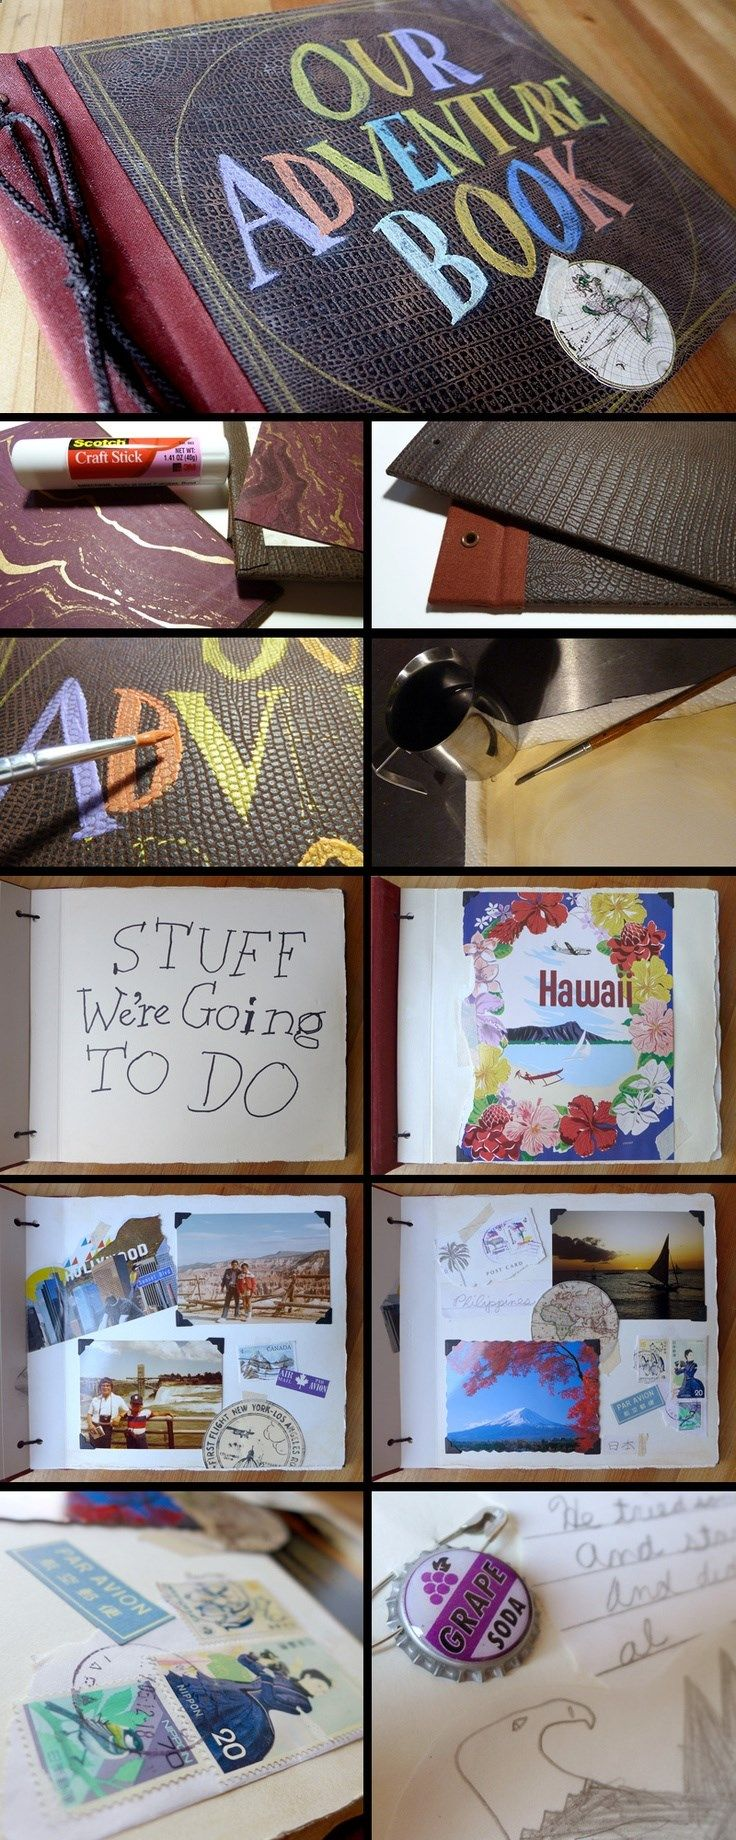 107 best images about 3 on Pinterest